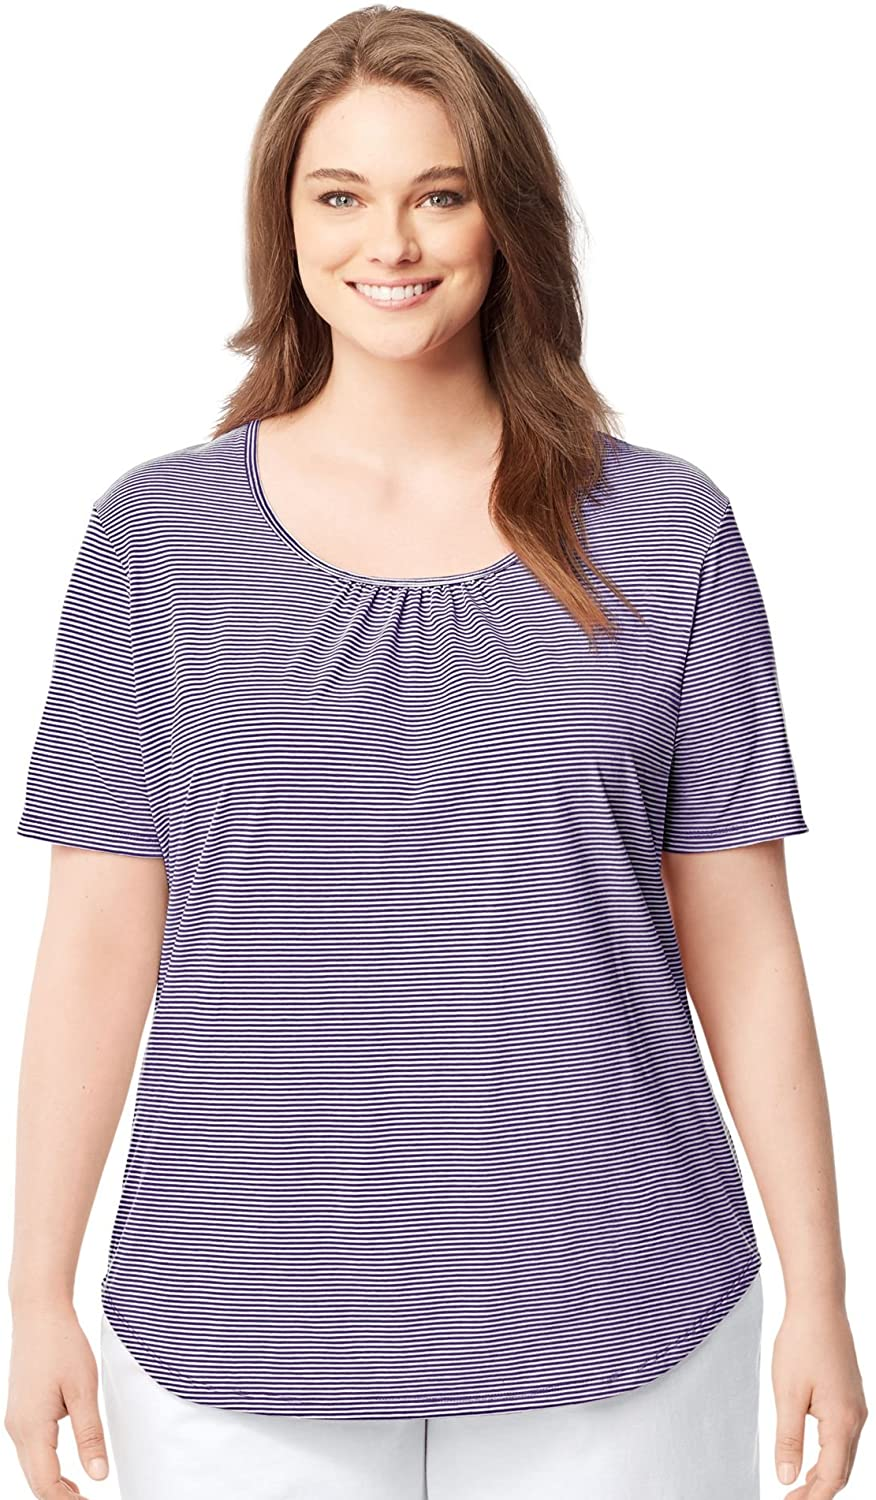 JUST MY SIZE Womens Shirred and Striped Scoop-Neck Jersey Tee, 5X